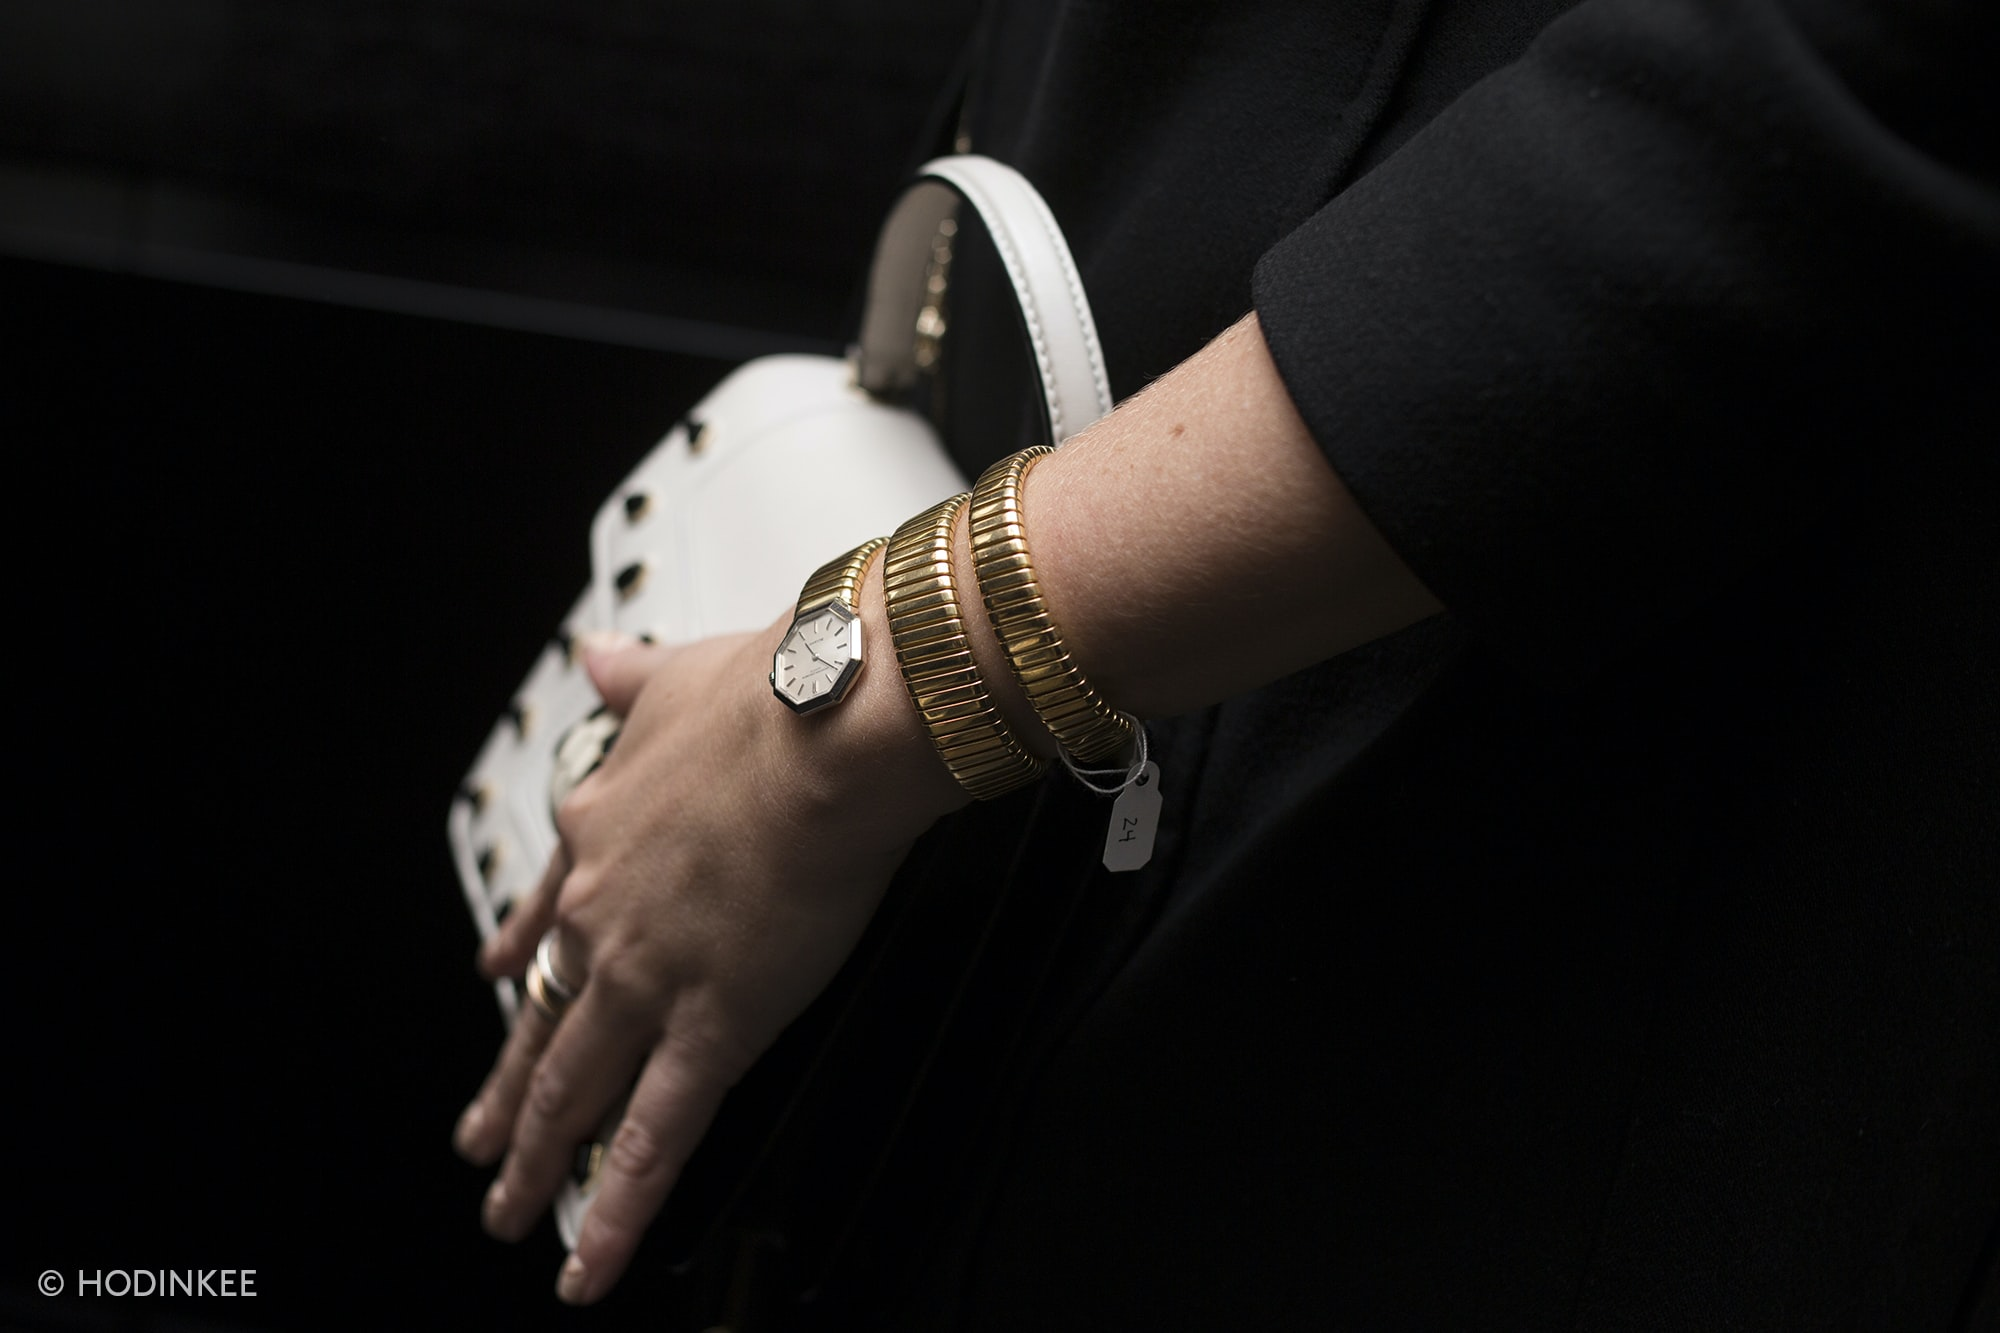 Photo Report: The HODINKEE Ladies' Collection At Material Good Photo Report: The HODINKEE Ladies' Collection At Material Good 20015246 copy